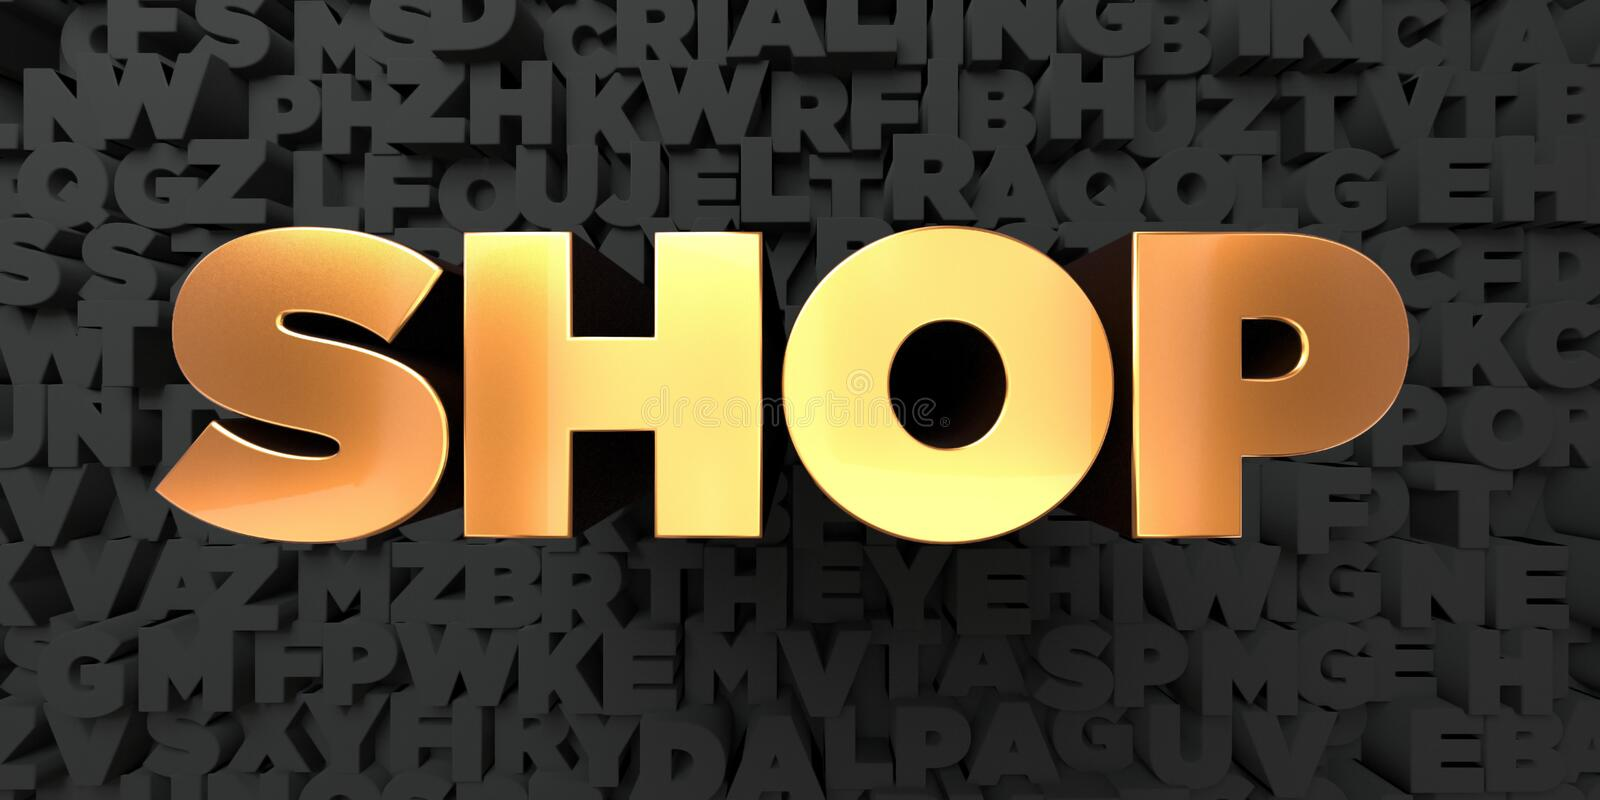 Shop - Gold text on black background - 3D rendered royalty free stock picture vector illustration